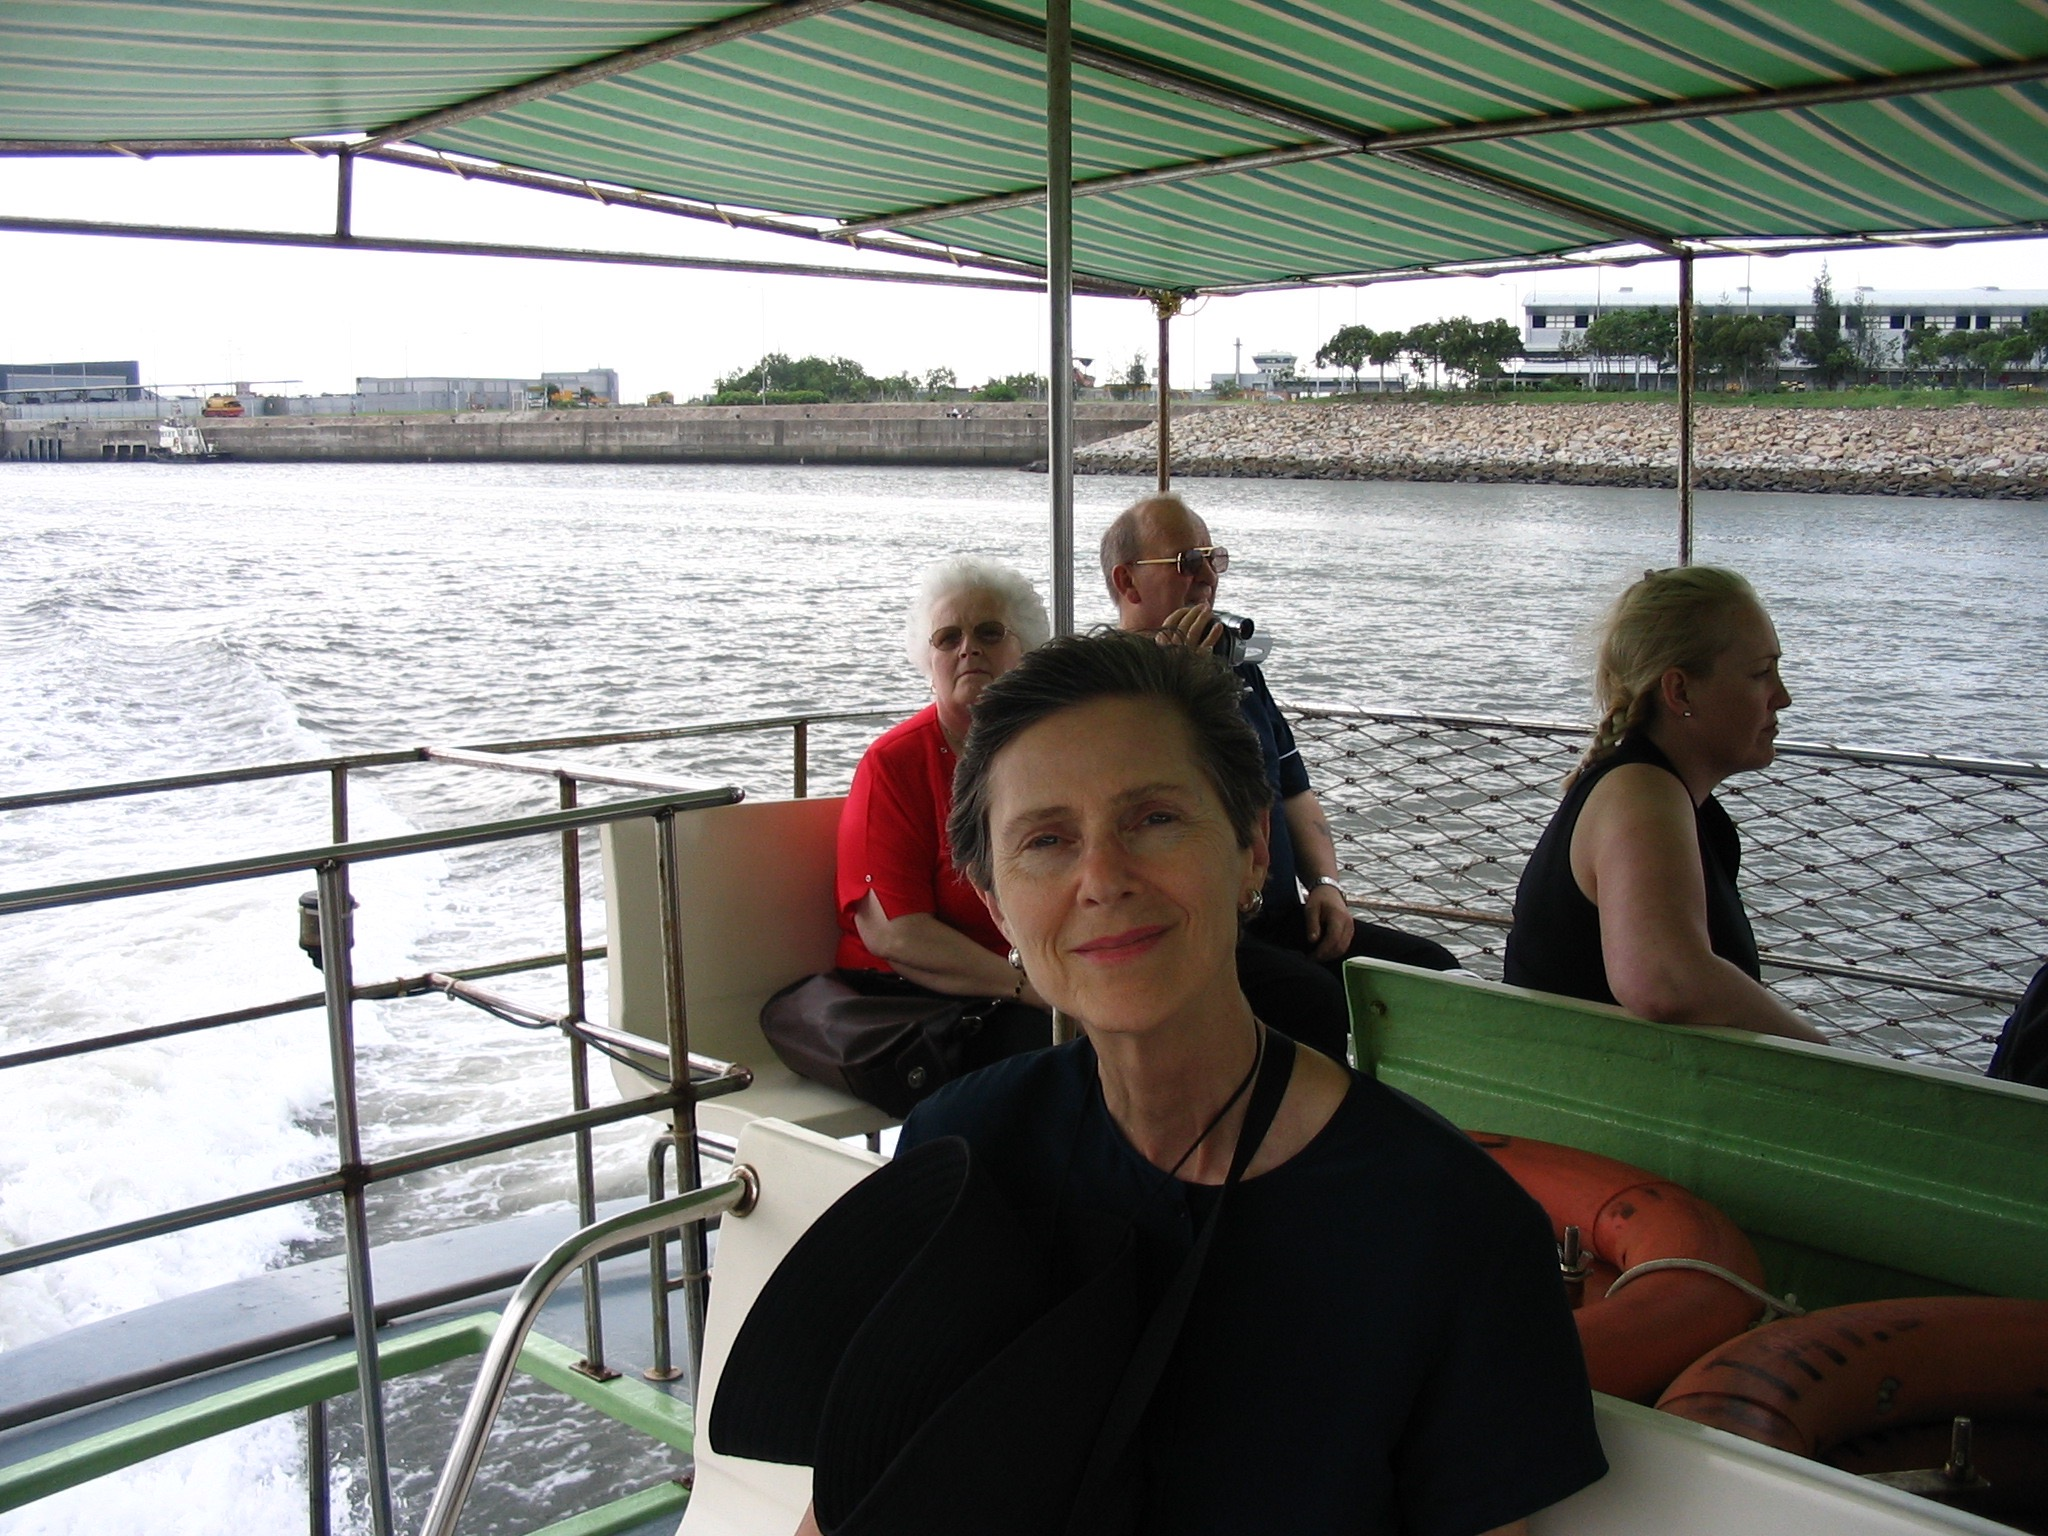 On a boat in China.